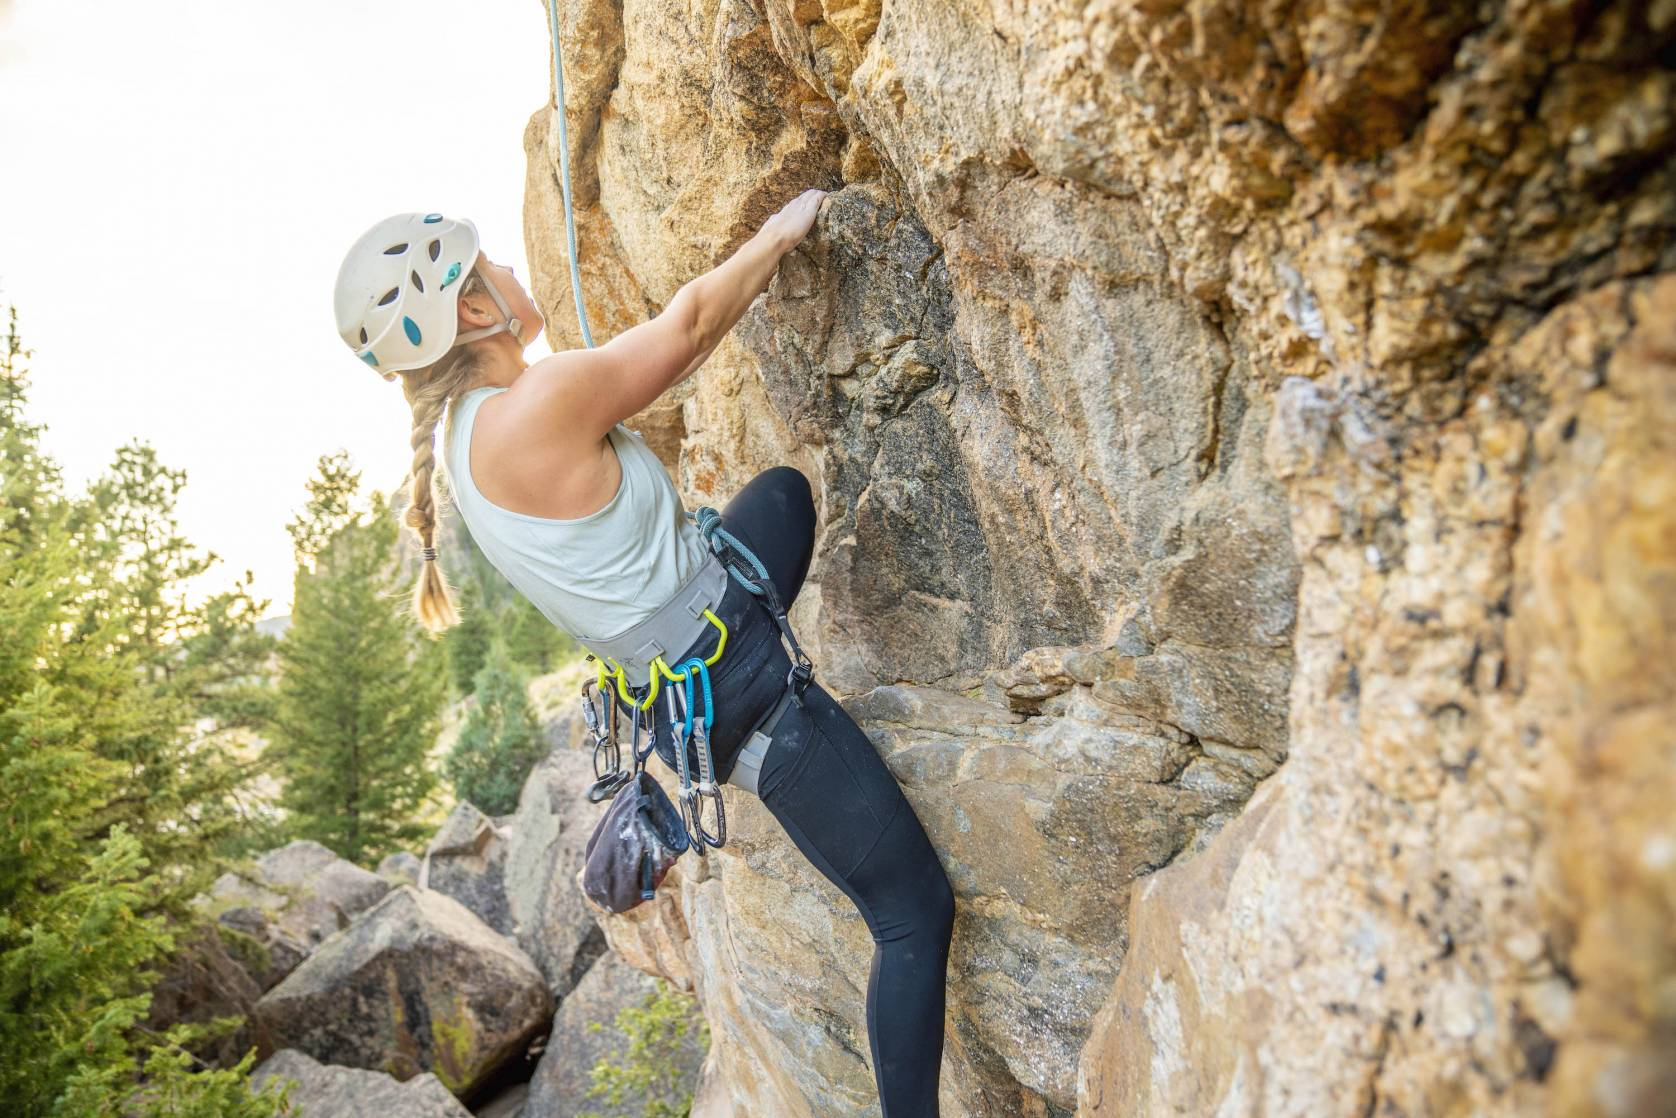 rock climbing shoes and harness for women